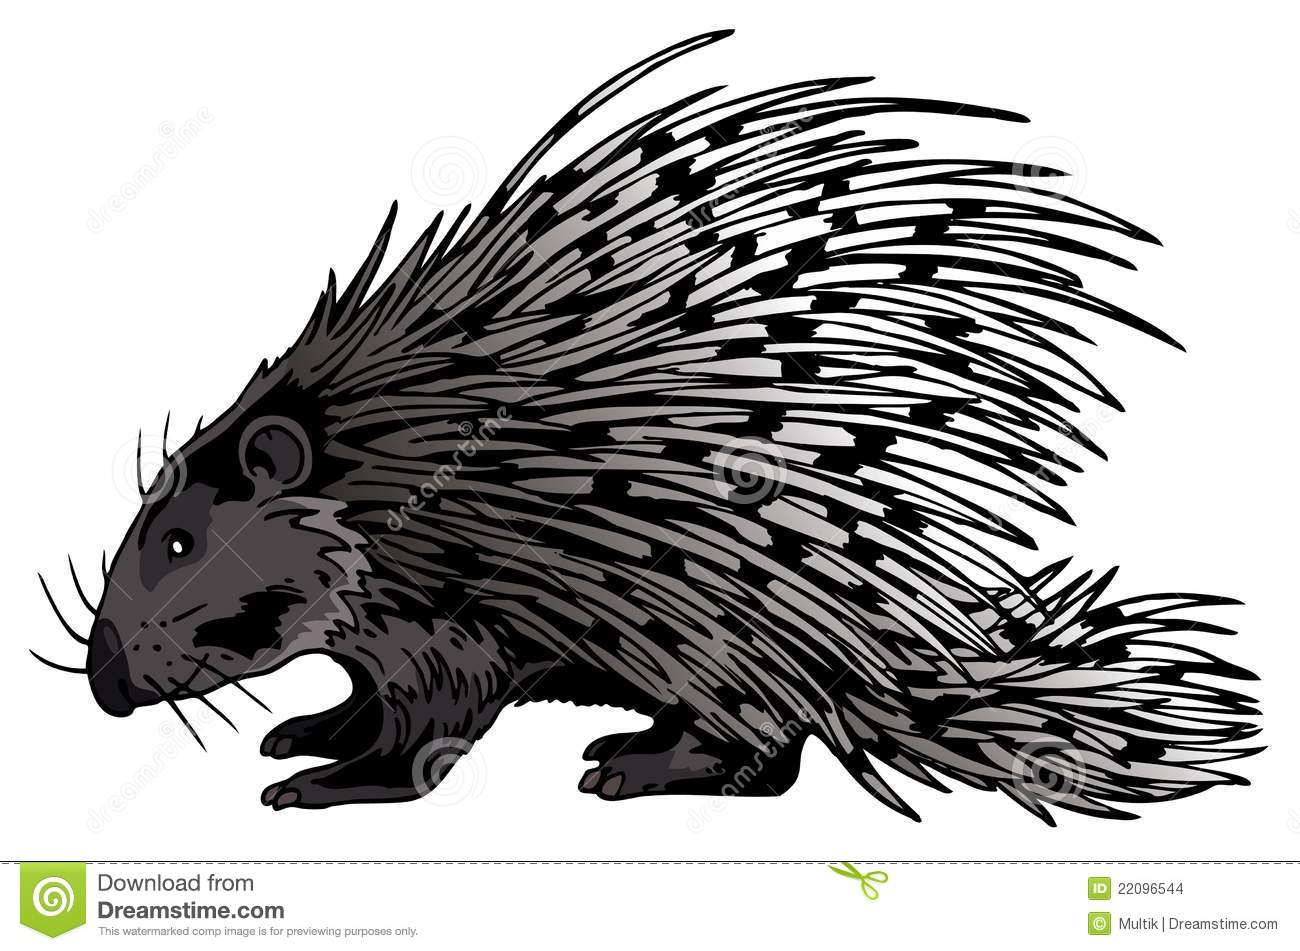 hight resolution of crested porcupine stock illustrations 5 crested porcupine stock illustrations vectors clipart dreamstime